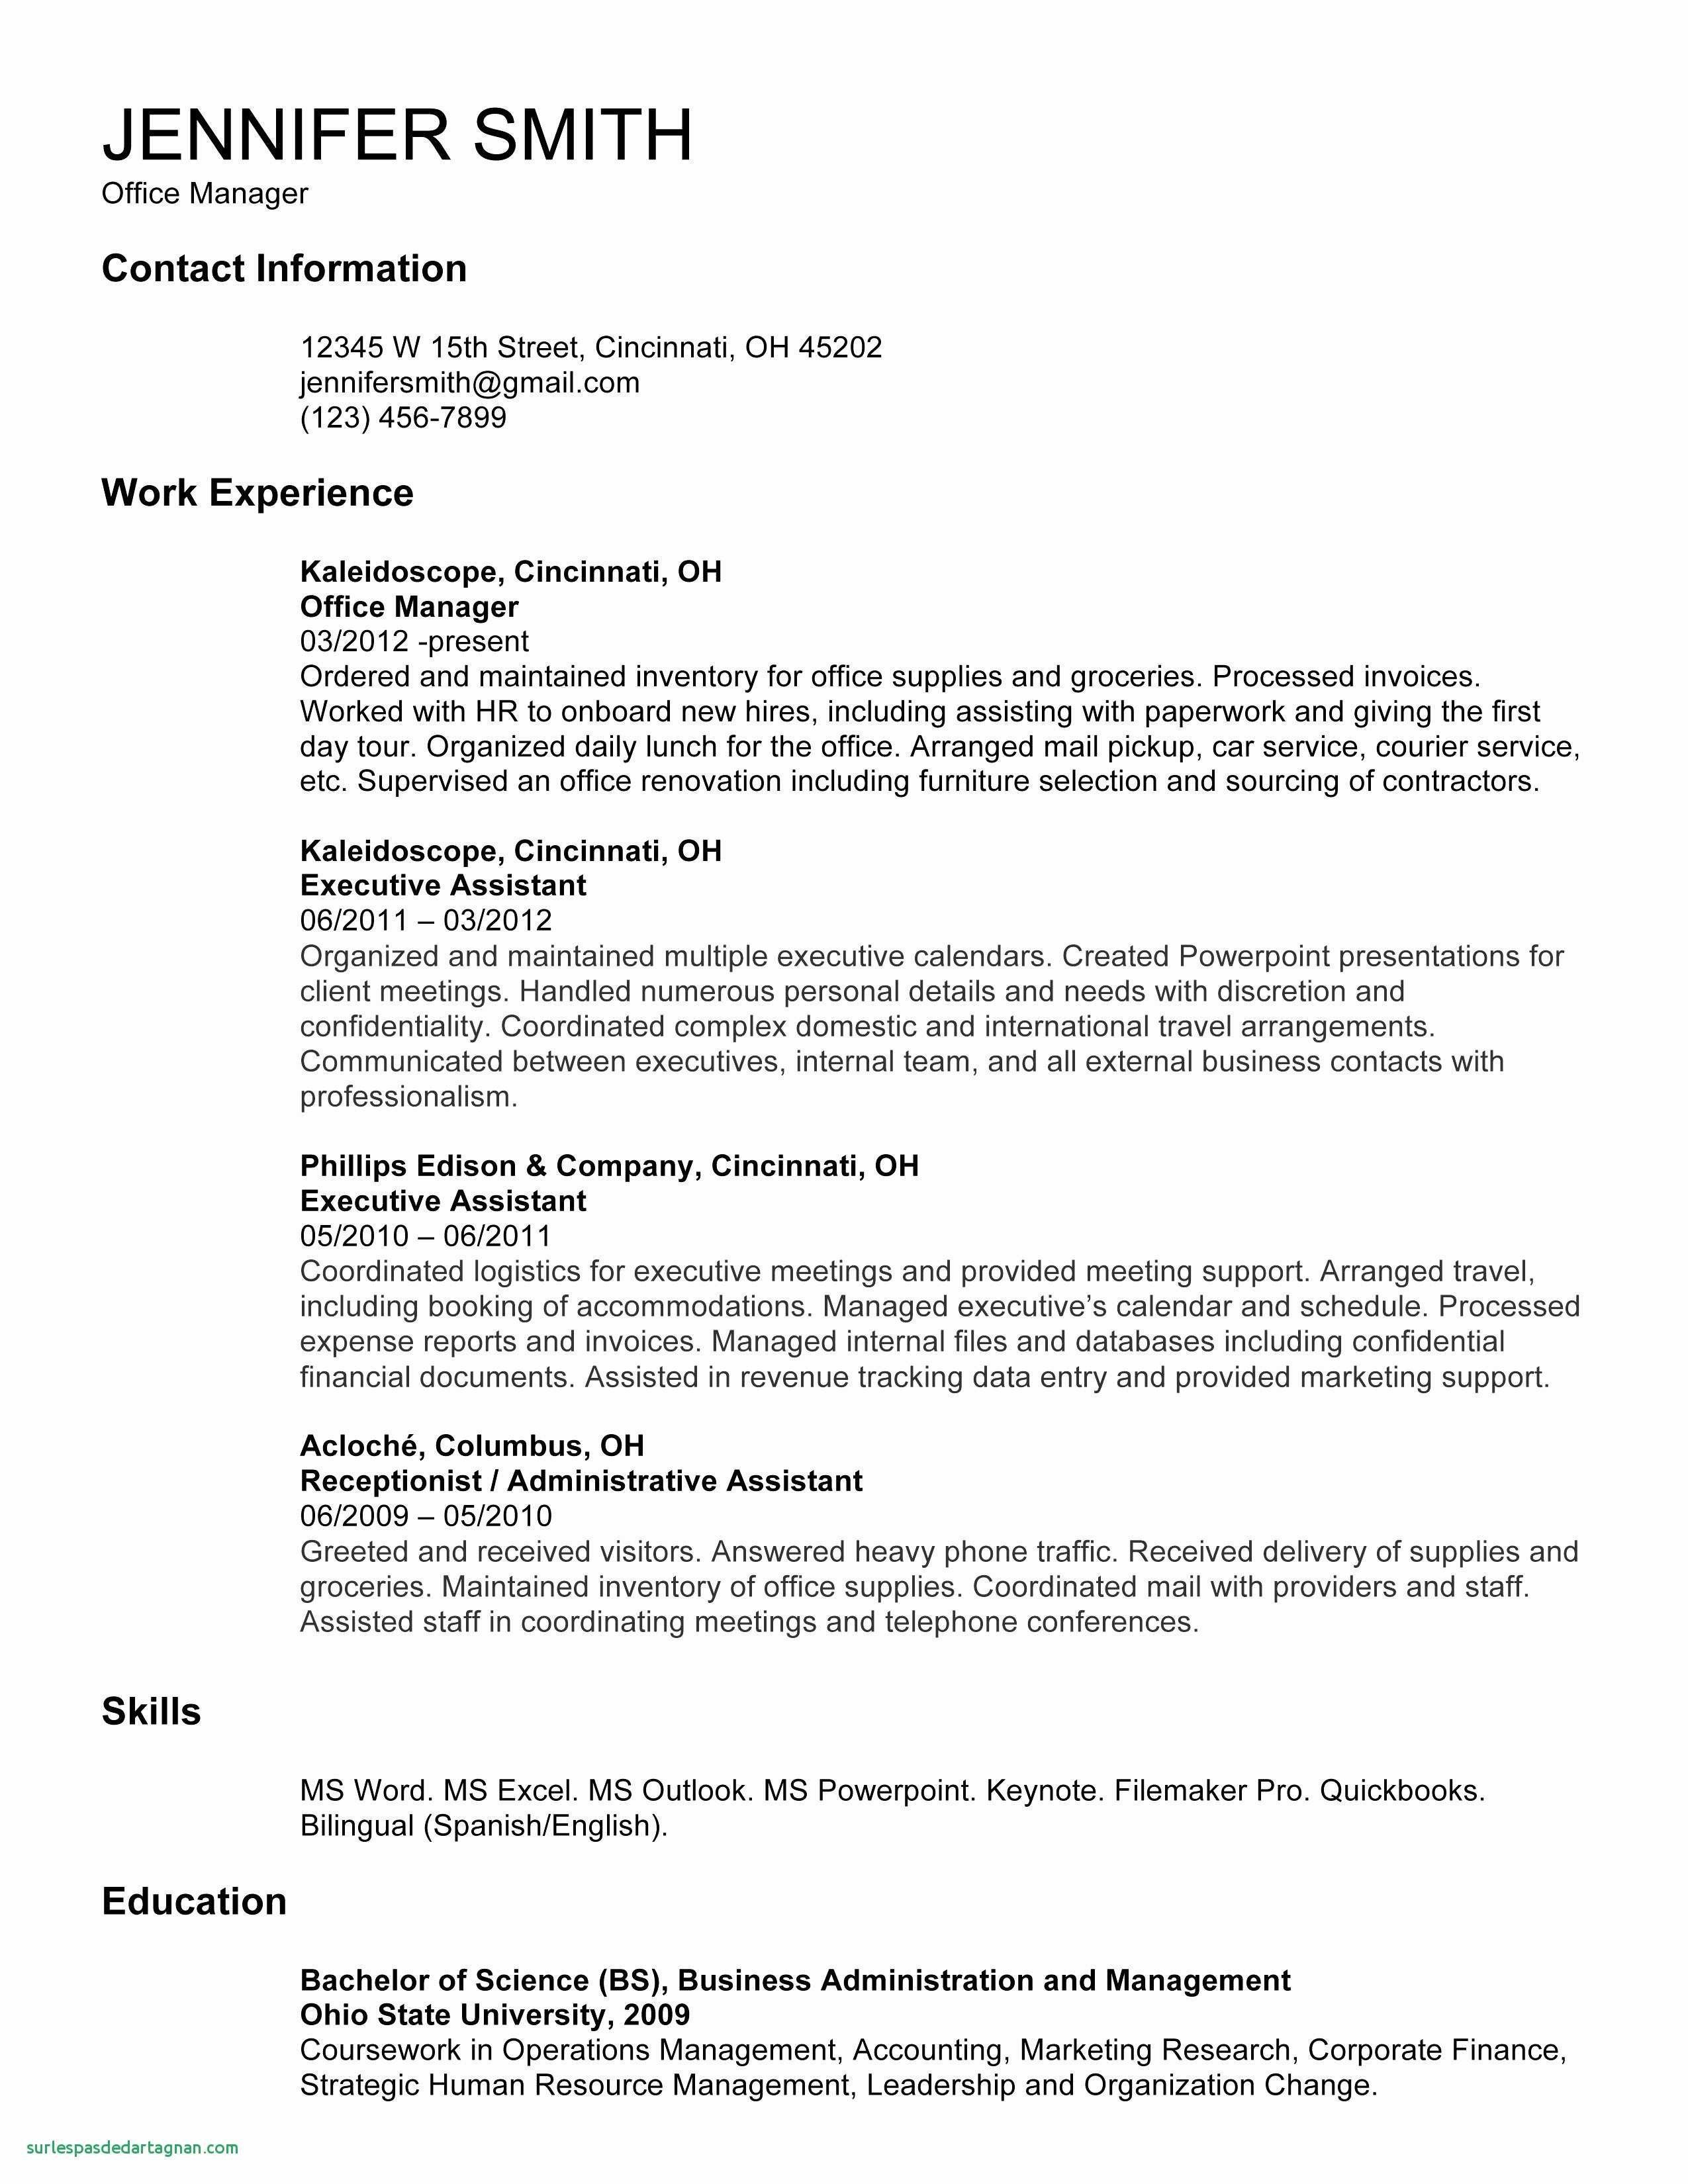 Best Resume Templates Free - Resume Template Download Free Unique ¢Ë†Å¡ Resume Template Download